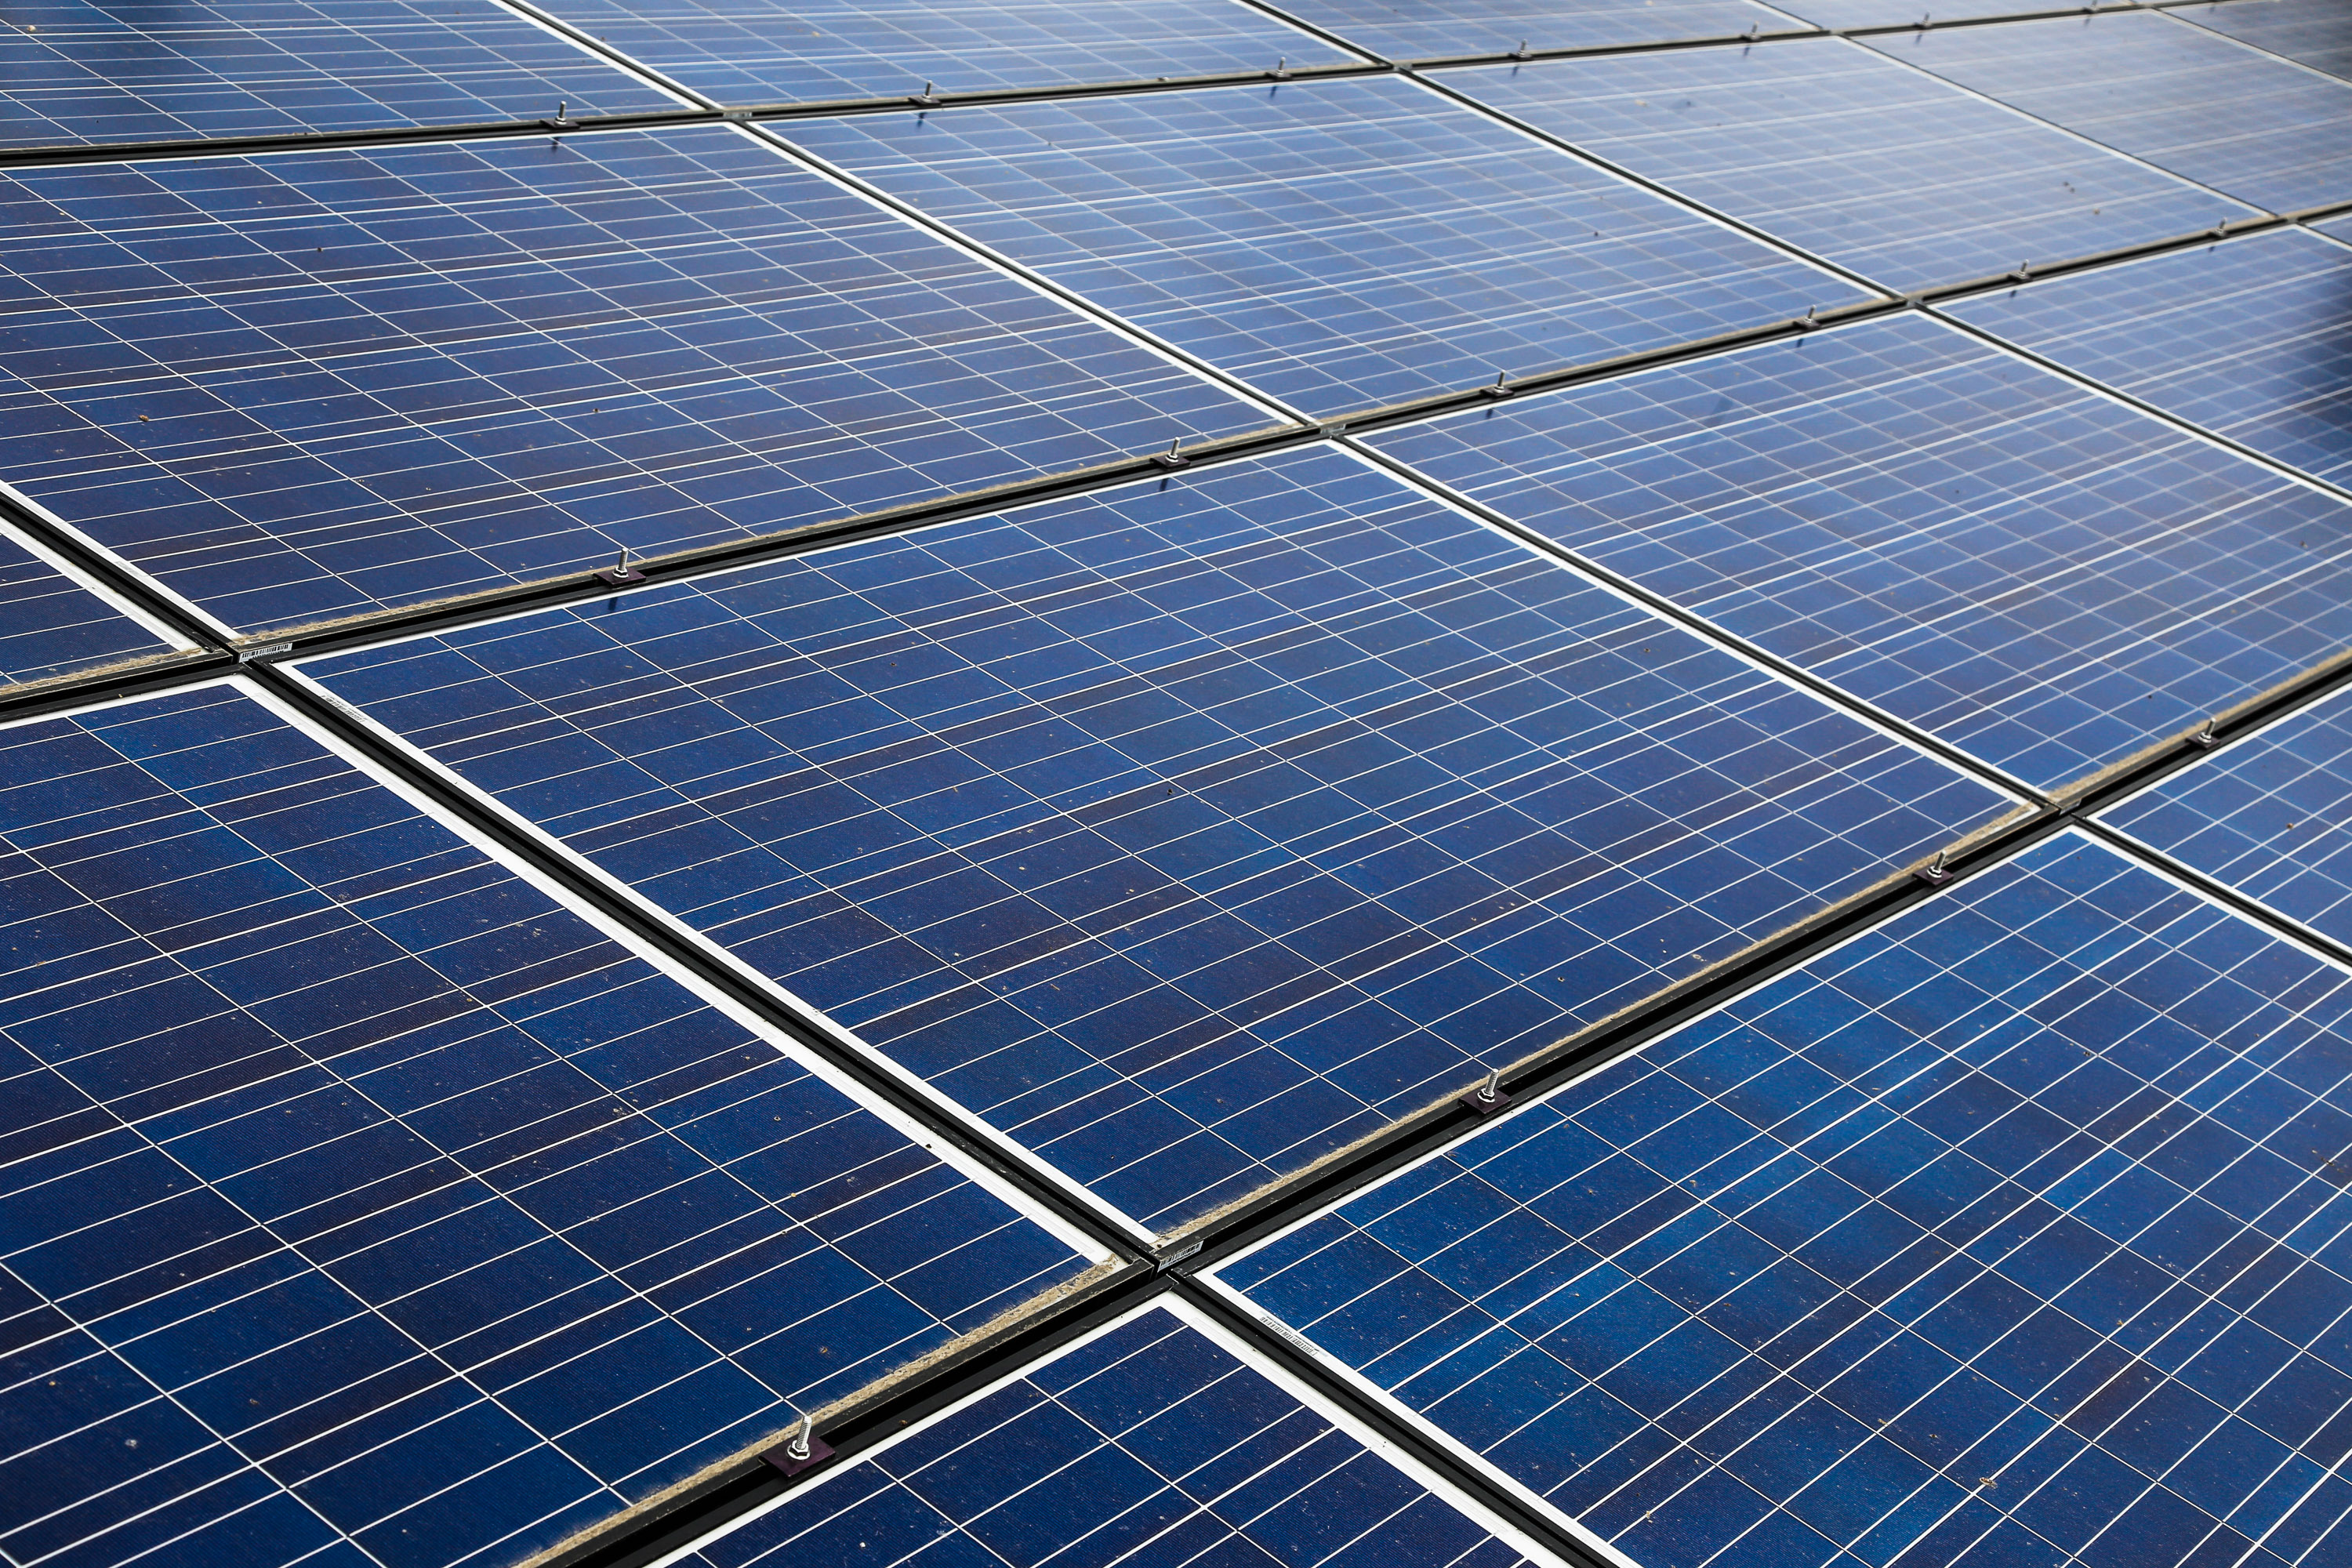 Perovskite Solar Cells: Promises and Challenges